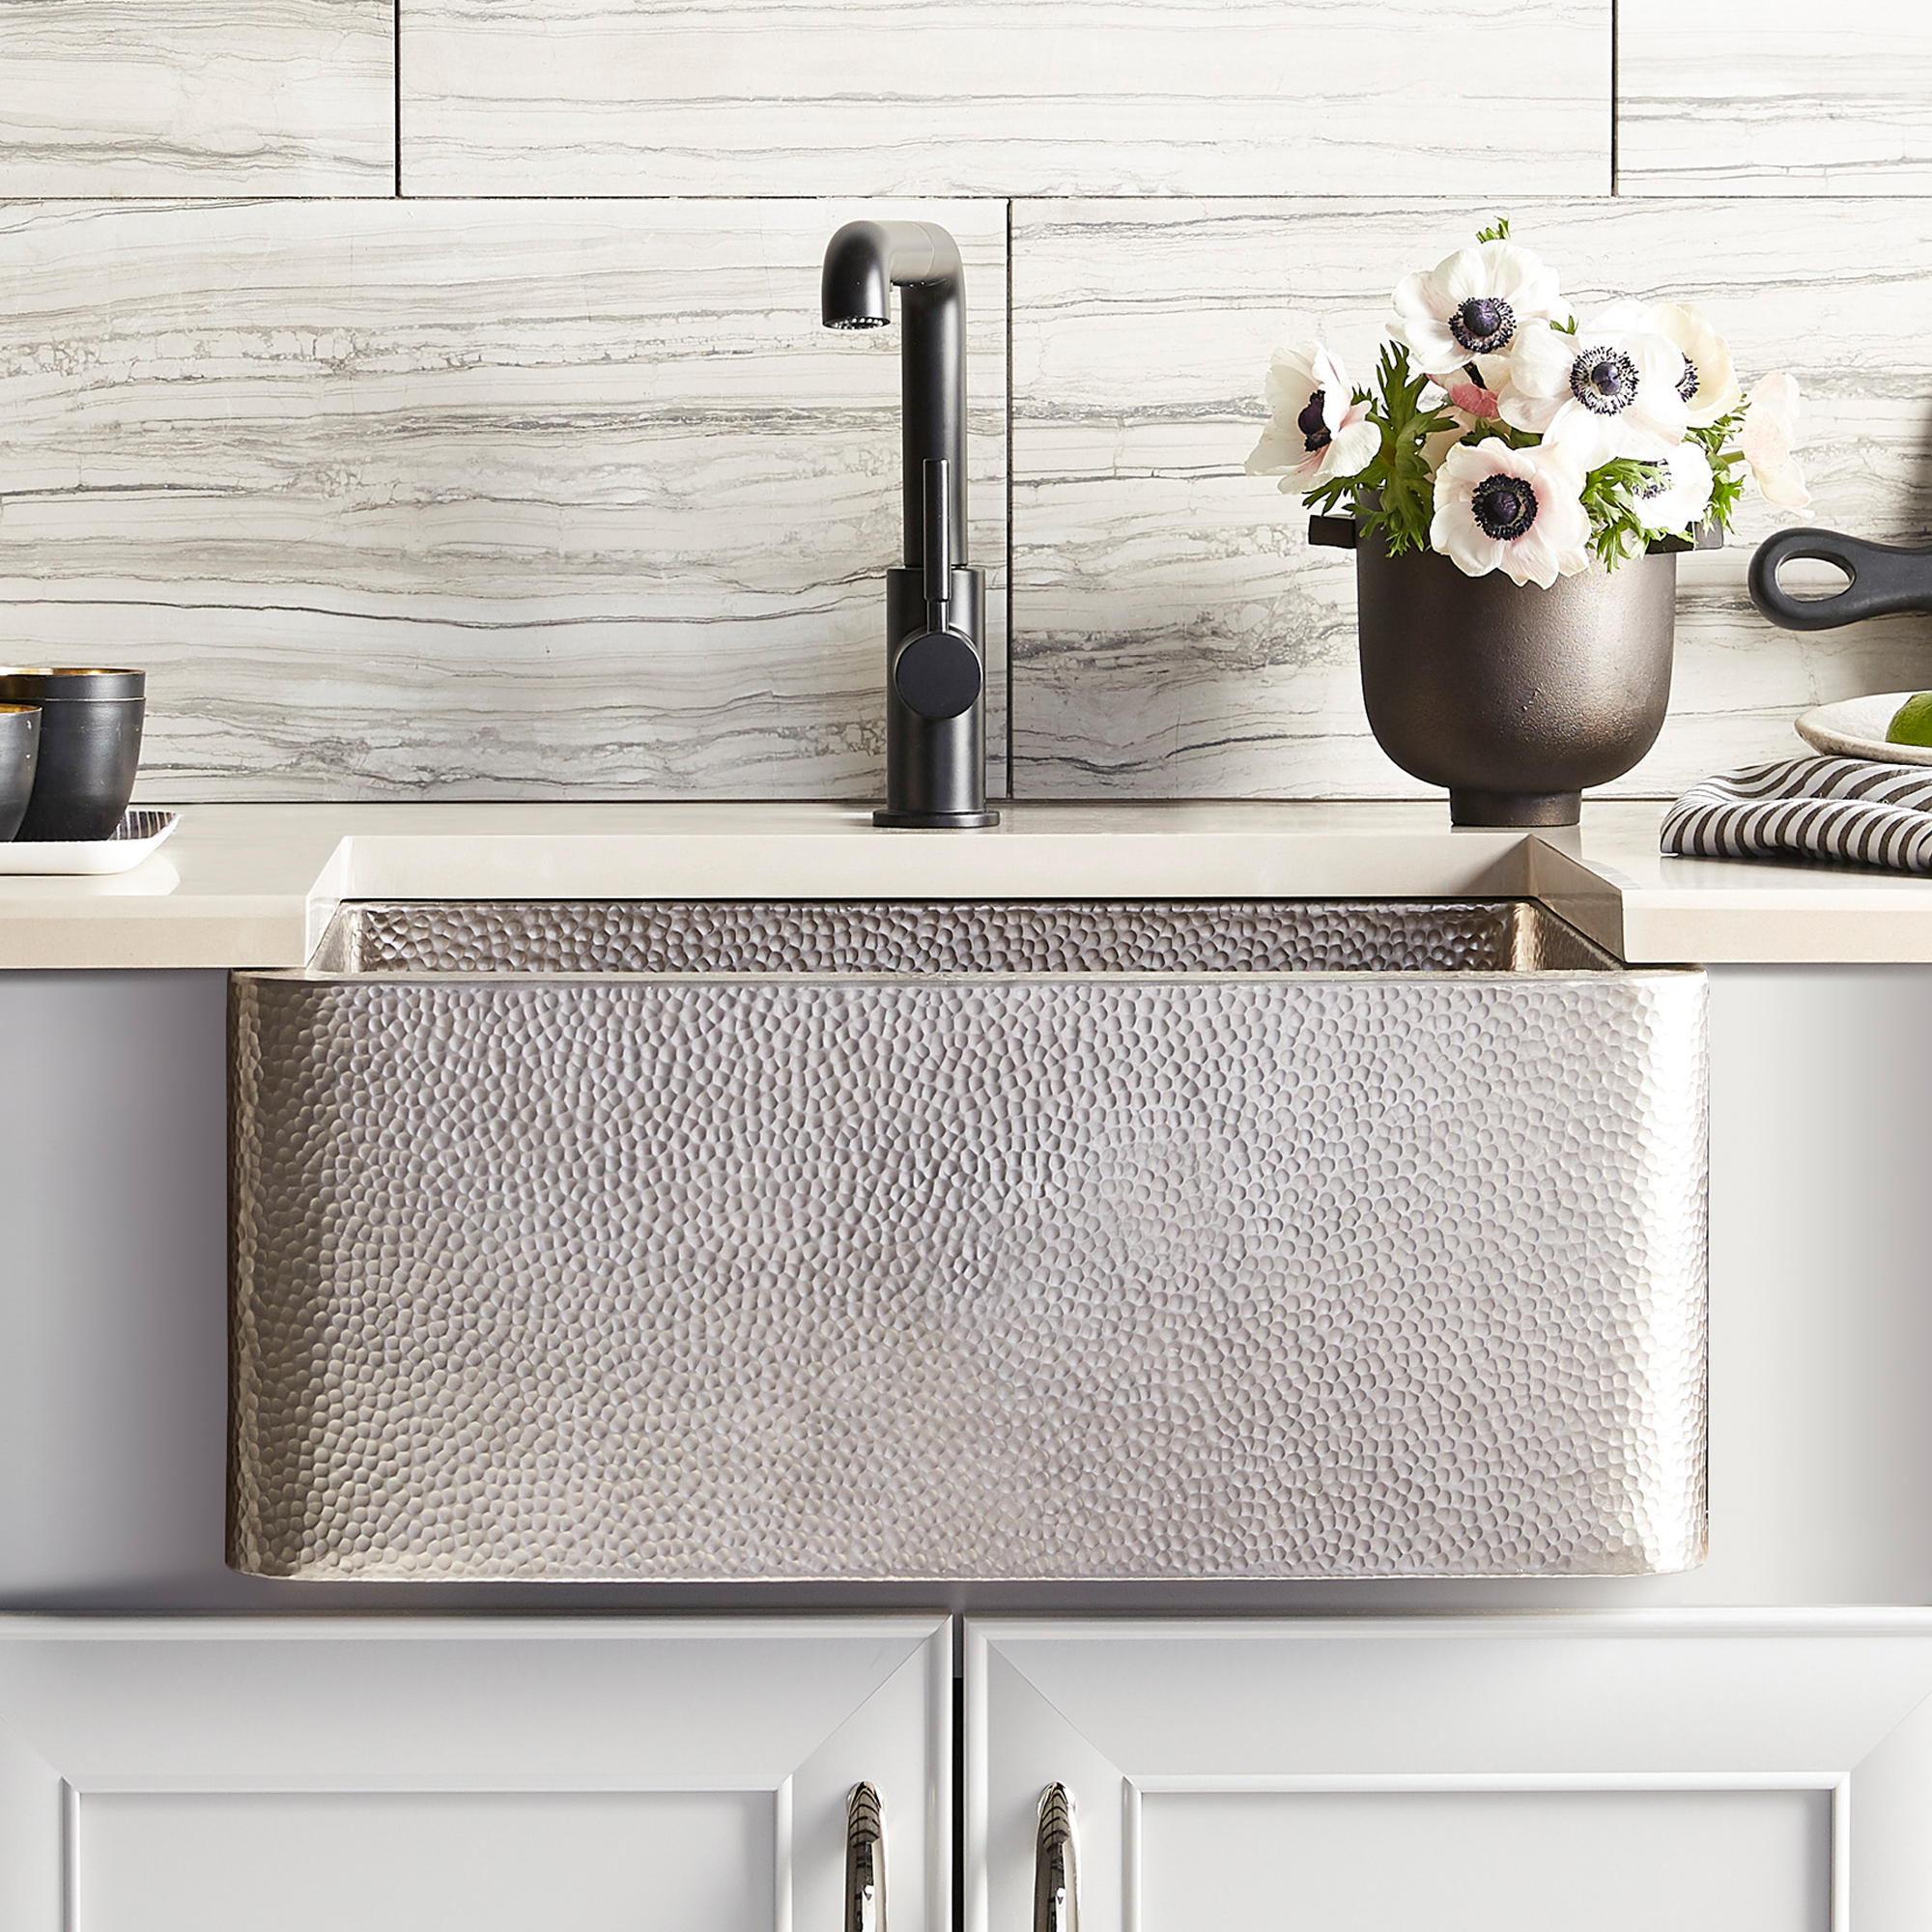 Native Trails 25 Nickel Farmhouse Sink Brushed Nickel Cpk570 The Sink Boutique